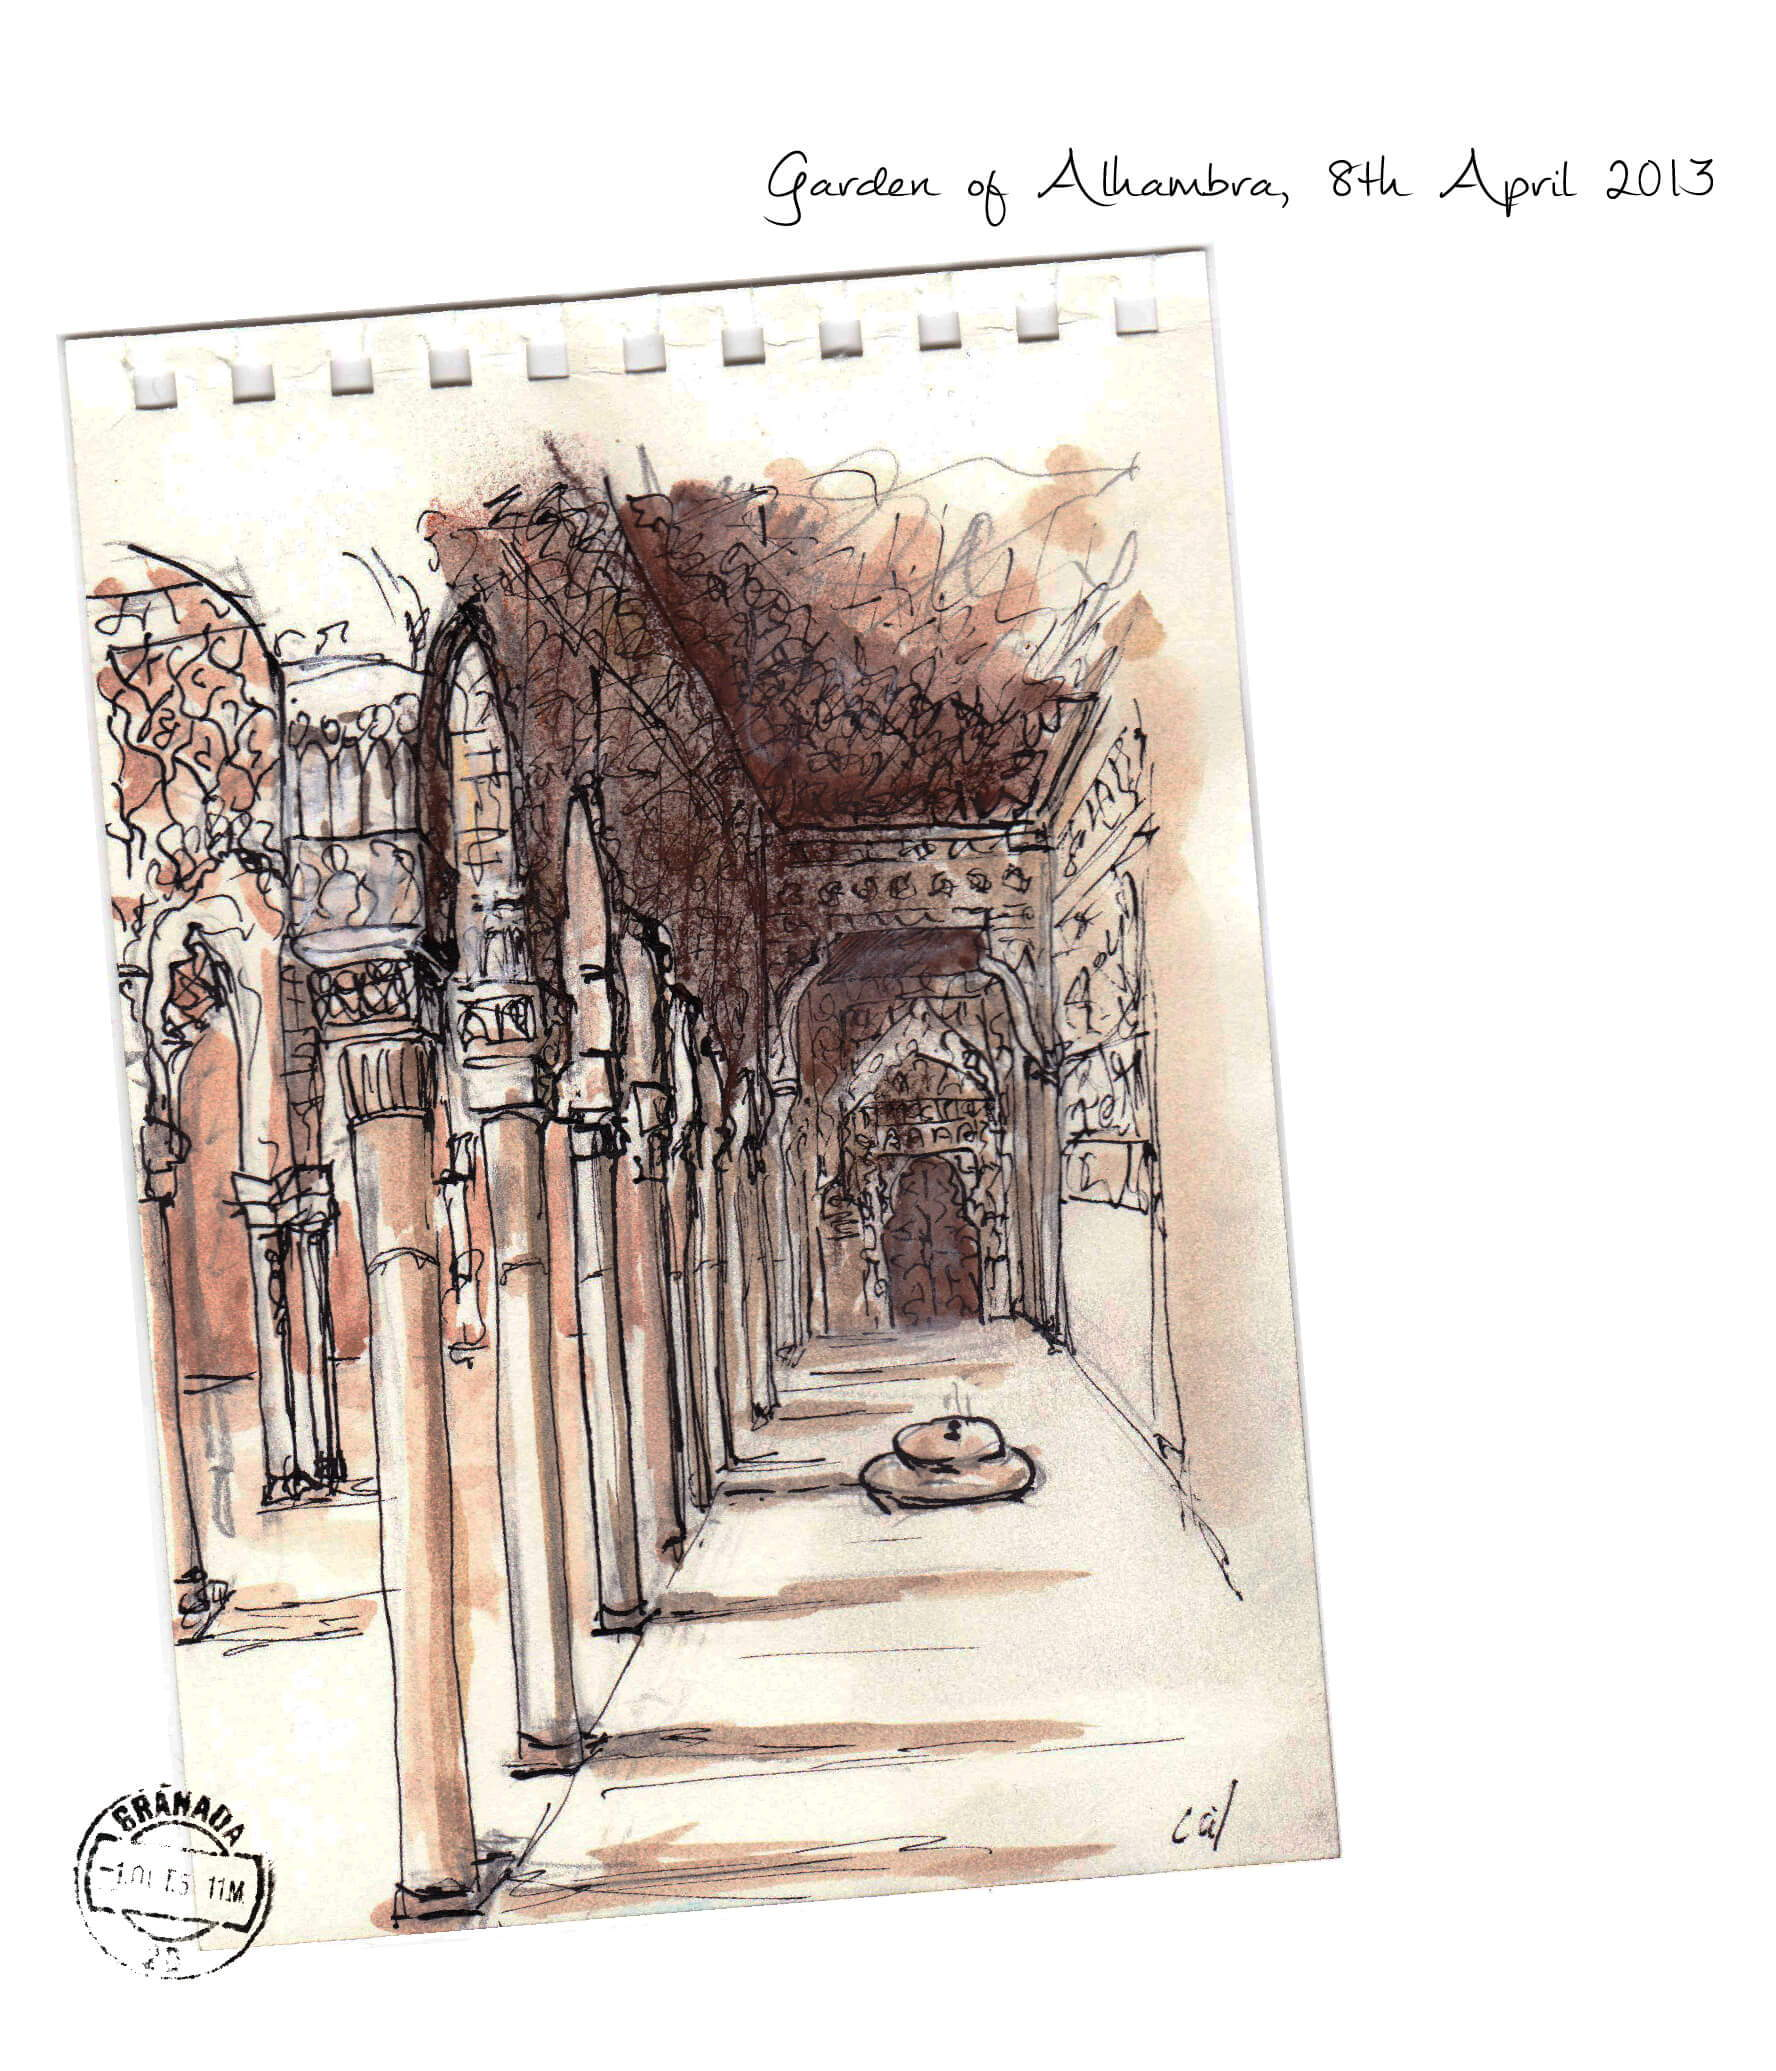 Iconic Amber Oud Inspiration behind this oud spicy amber unisex perfume, the Garden of Alhambra in Grenade Spain